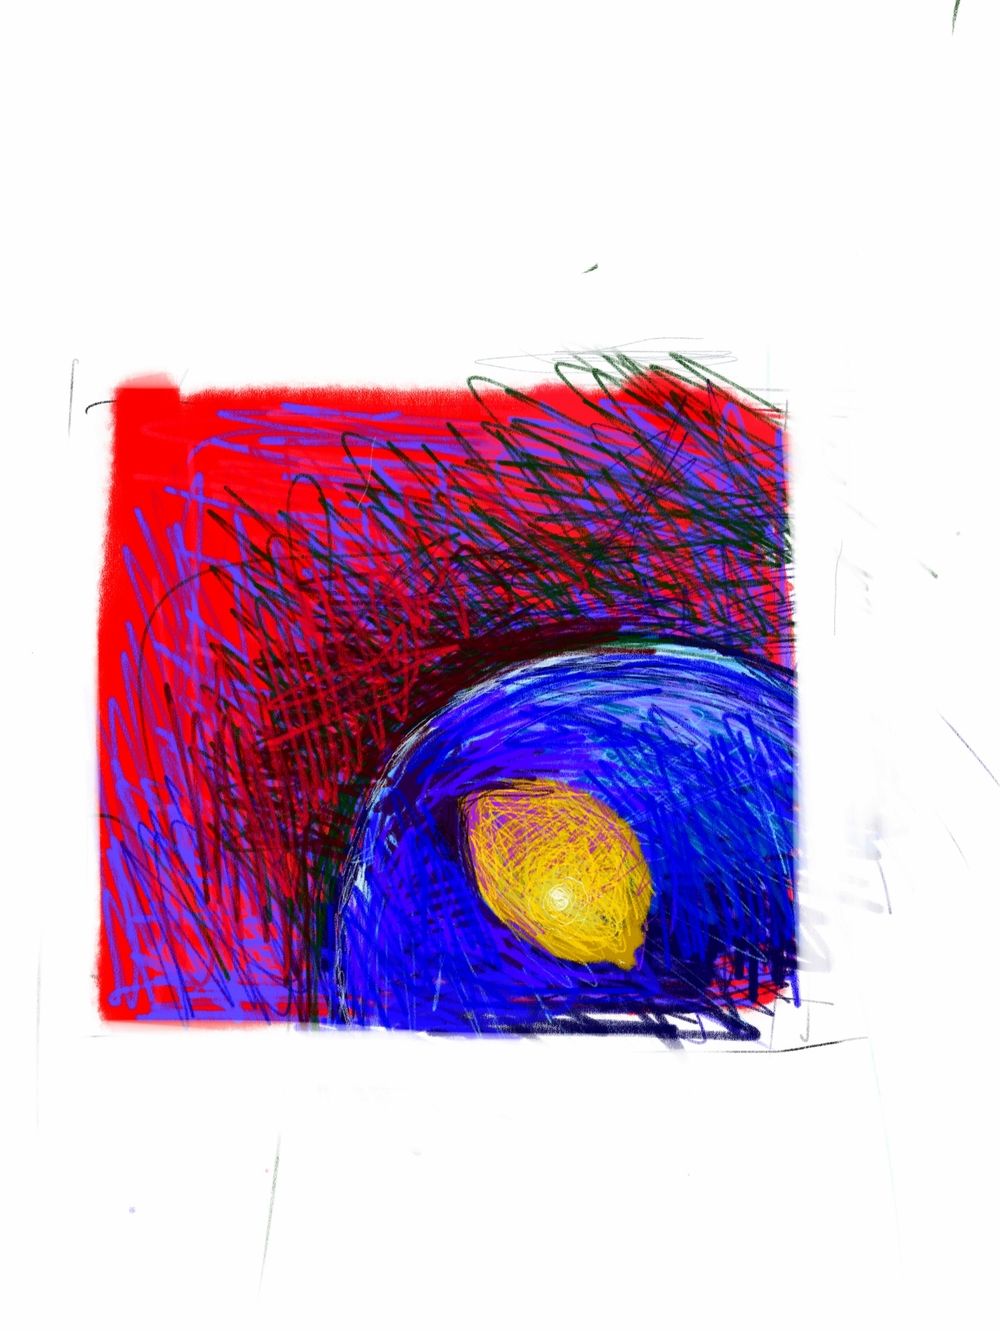 Lemon, blue bowl and red lacquer tray      digital sketch